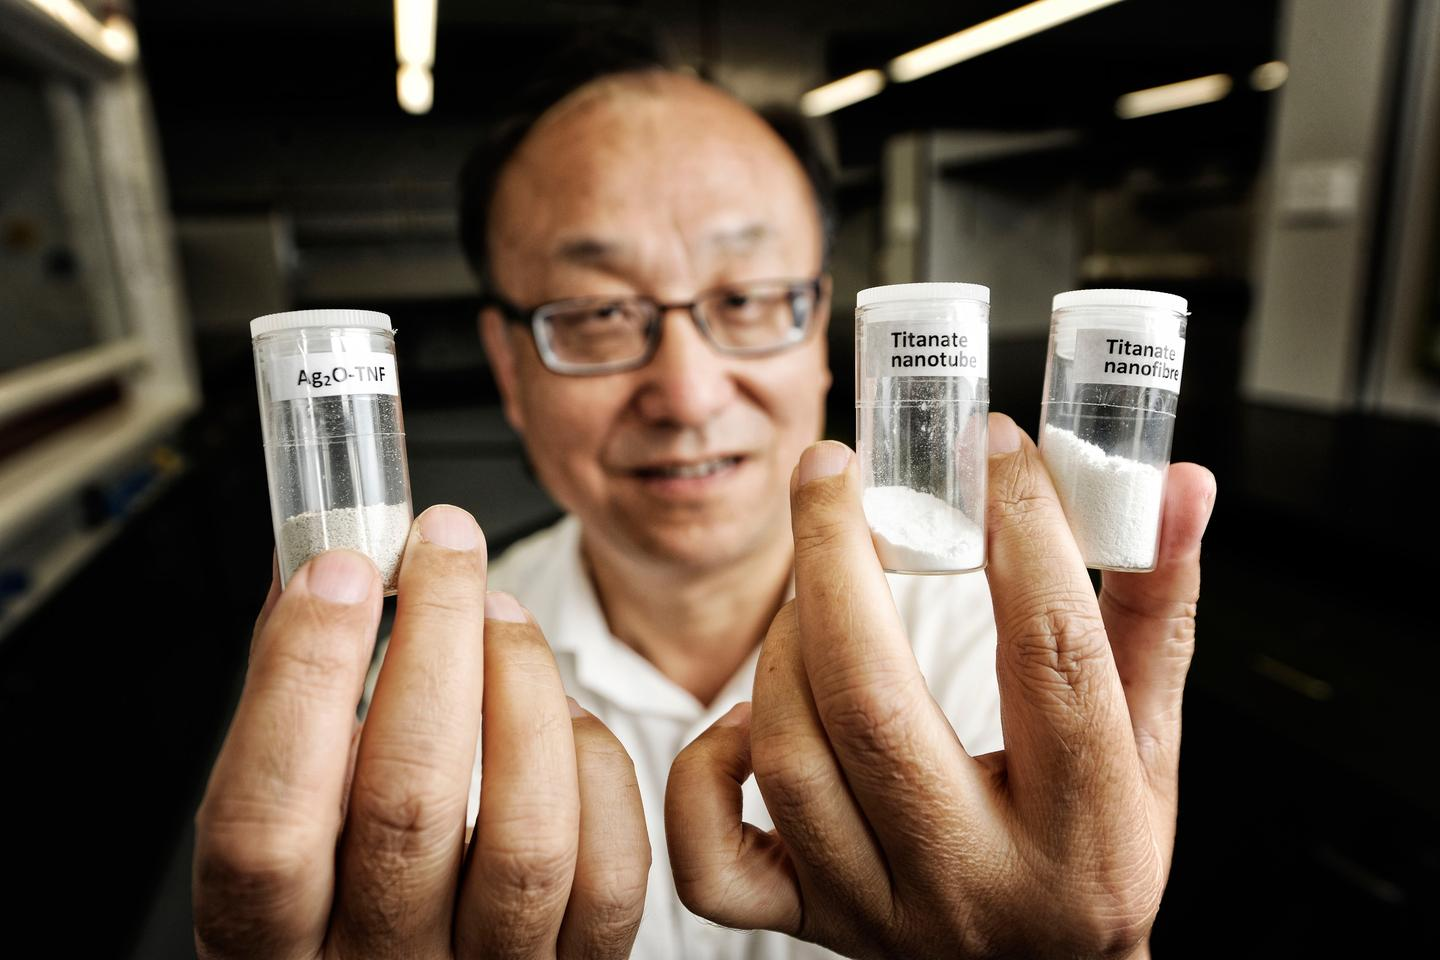 Professor Huai-Yong Zhu from QUT Chemistry with the titanate nanofiber that can remove radioactive material from contaminated water